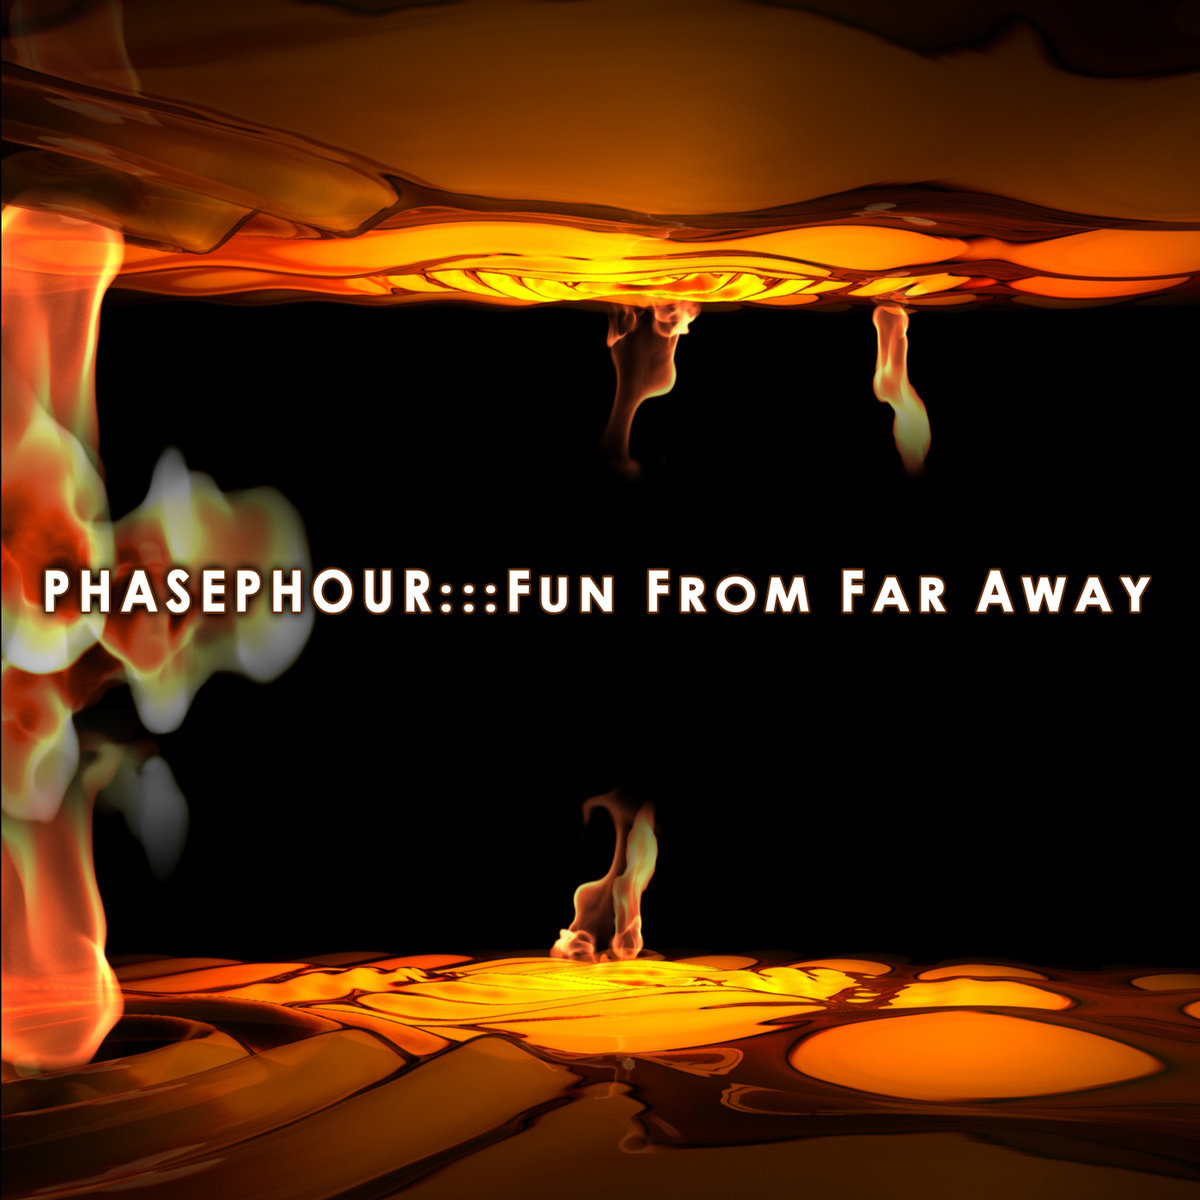 PhasePhour - The Worlds Biggest Midget @ 'Fun From Far Away' album (electronic, goa)